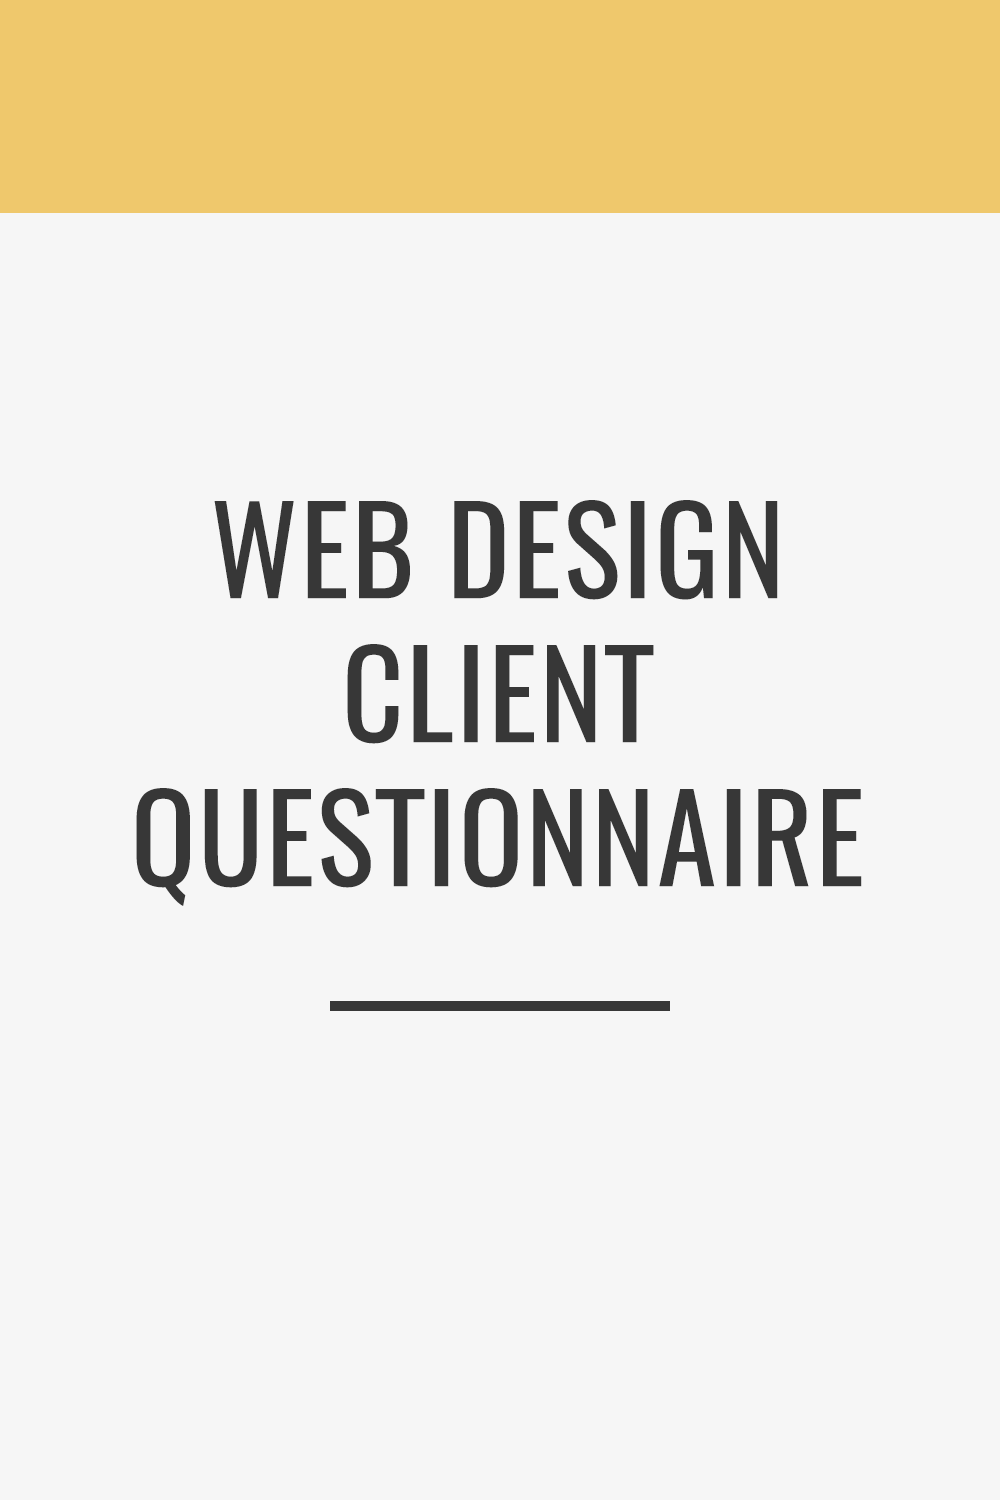 Client Questionnaire The Busy Bee Web Design Tips Client Questionnaire Web Design